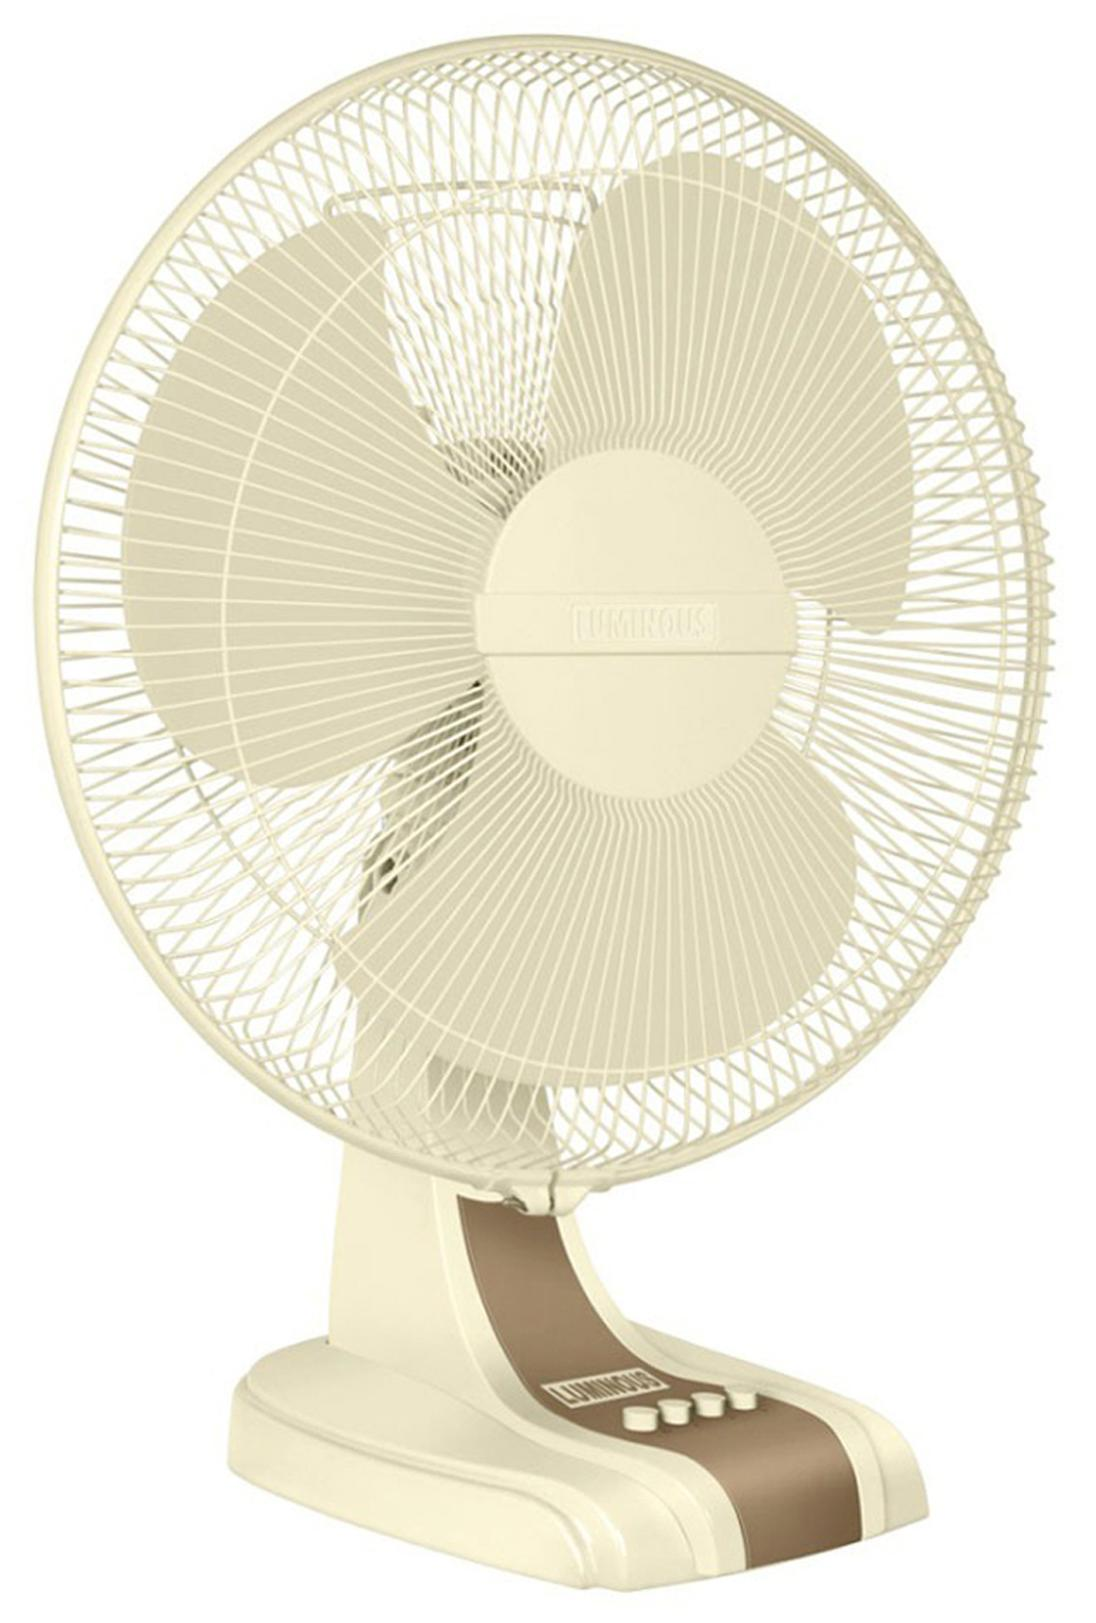 Luminous Mojo HS 3 Blades (400 mm) Table Fan (Cream)